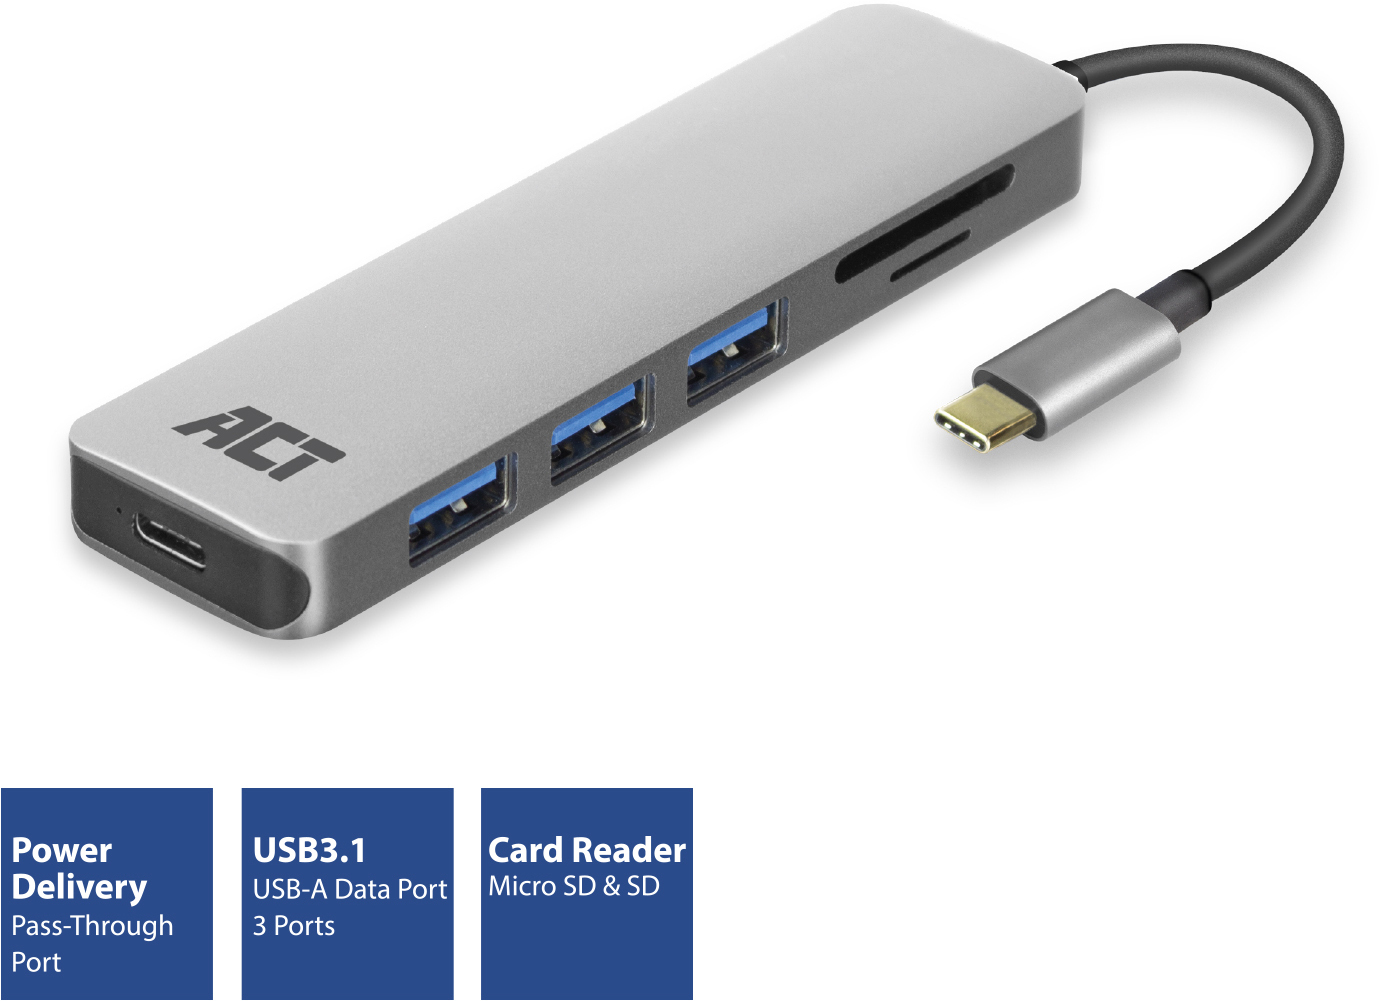 Act Ac7050 3 Port Usb C 3 1 Gen1 Usb 3 0 Hub With Card Reader And Pd Pass Through Port Kenmerken Tweakers